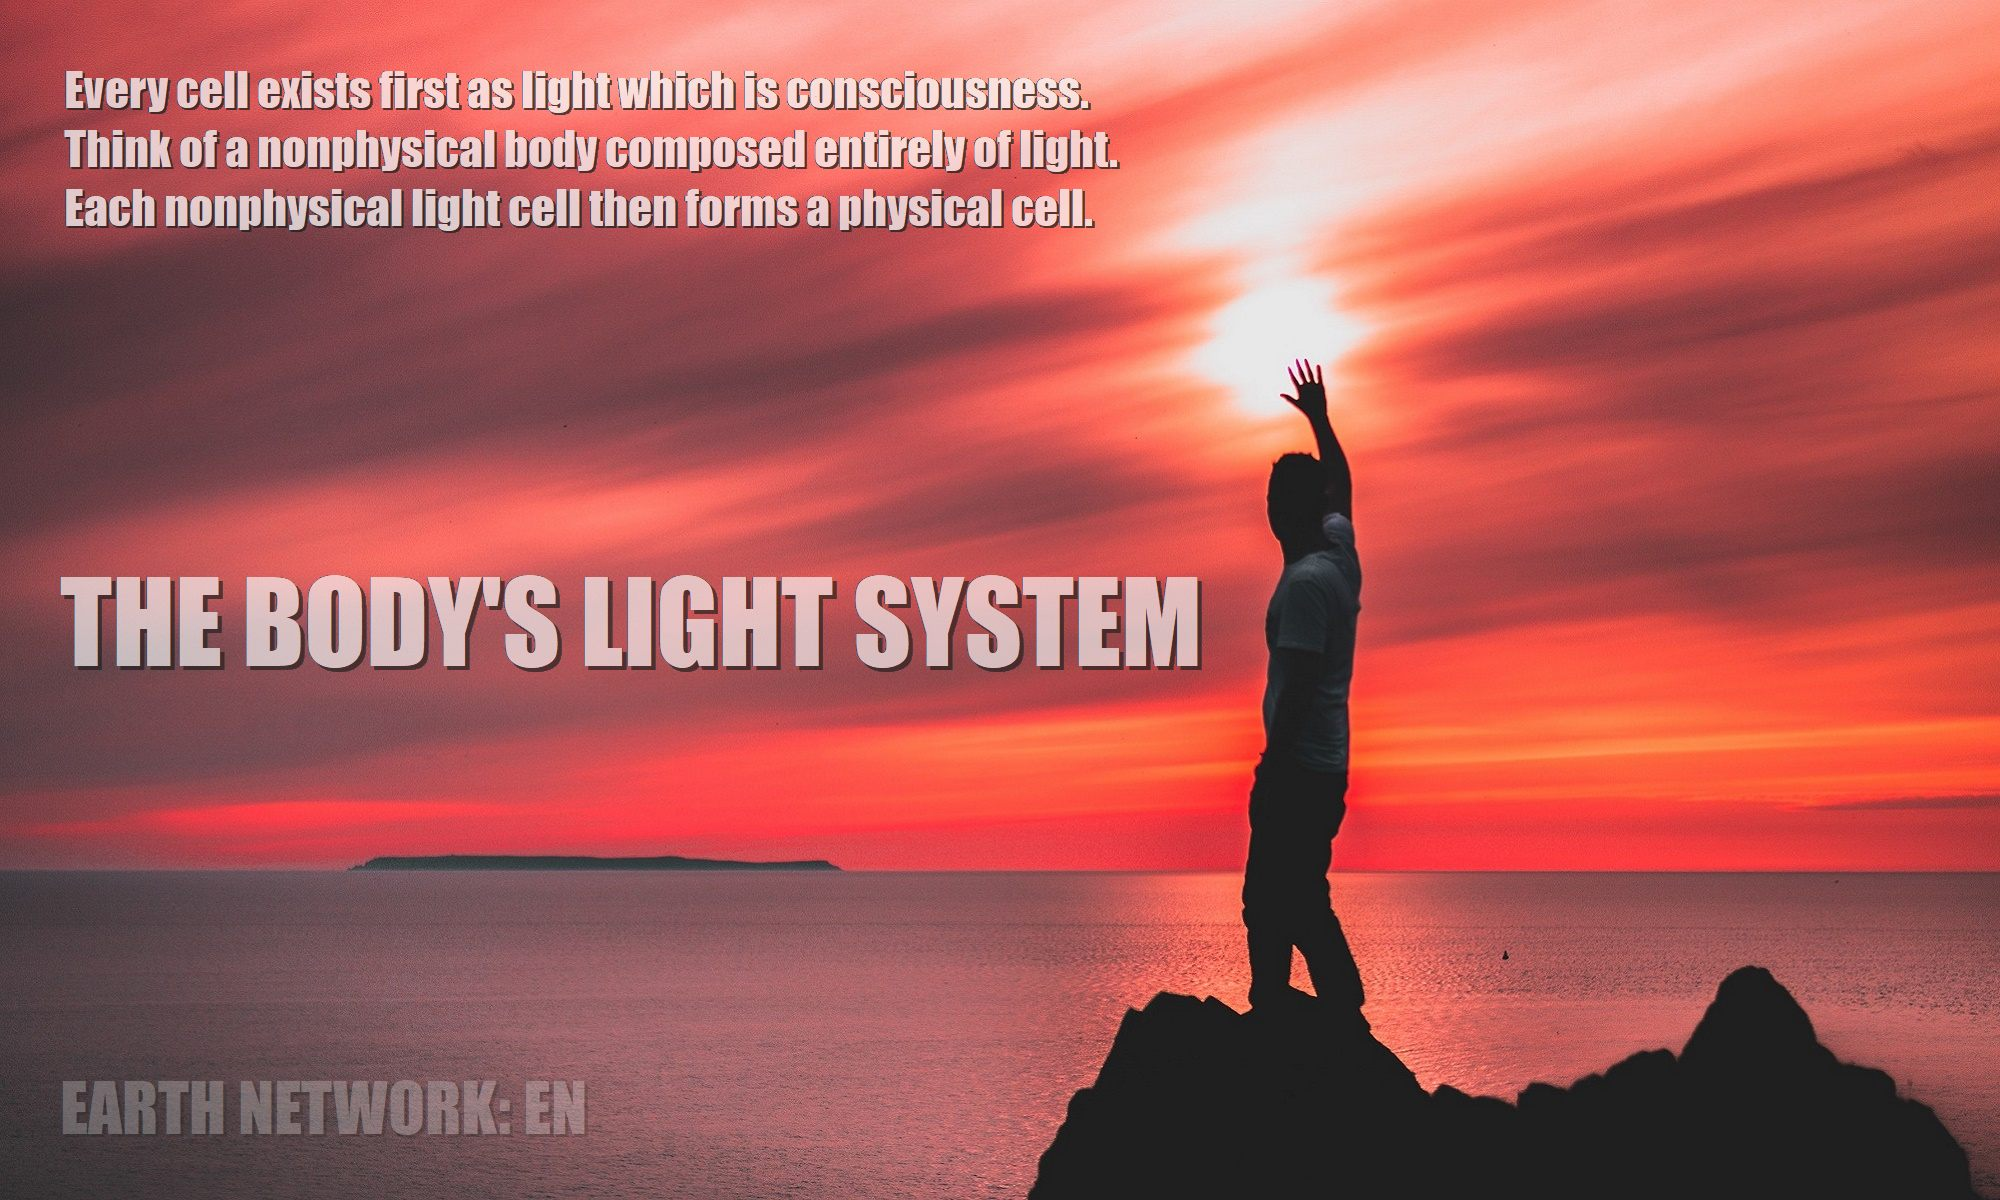 Everything-exists-first-as-light-consciousness